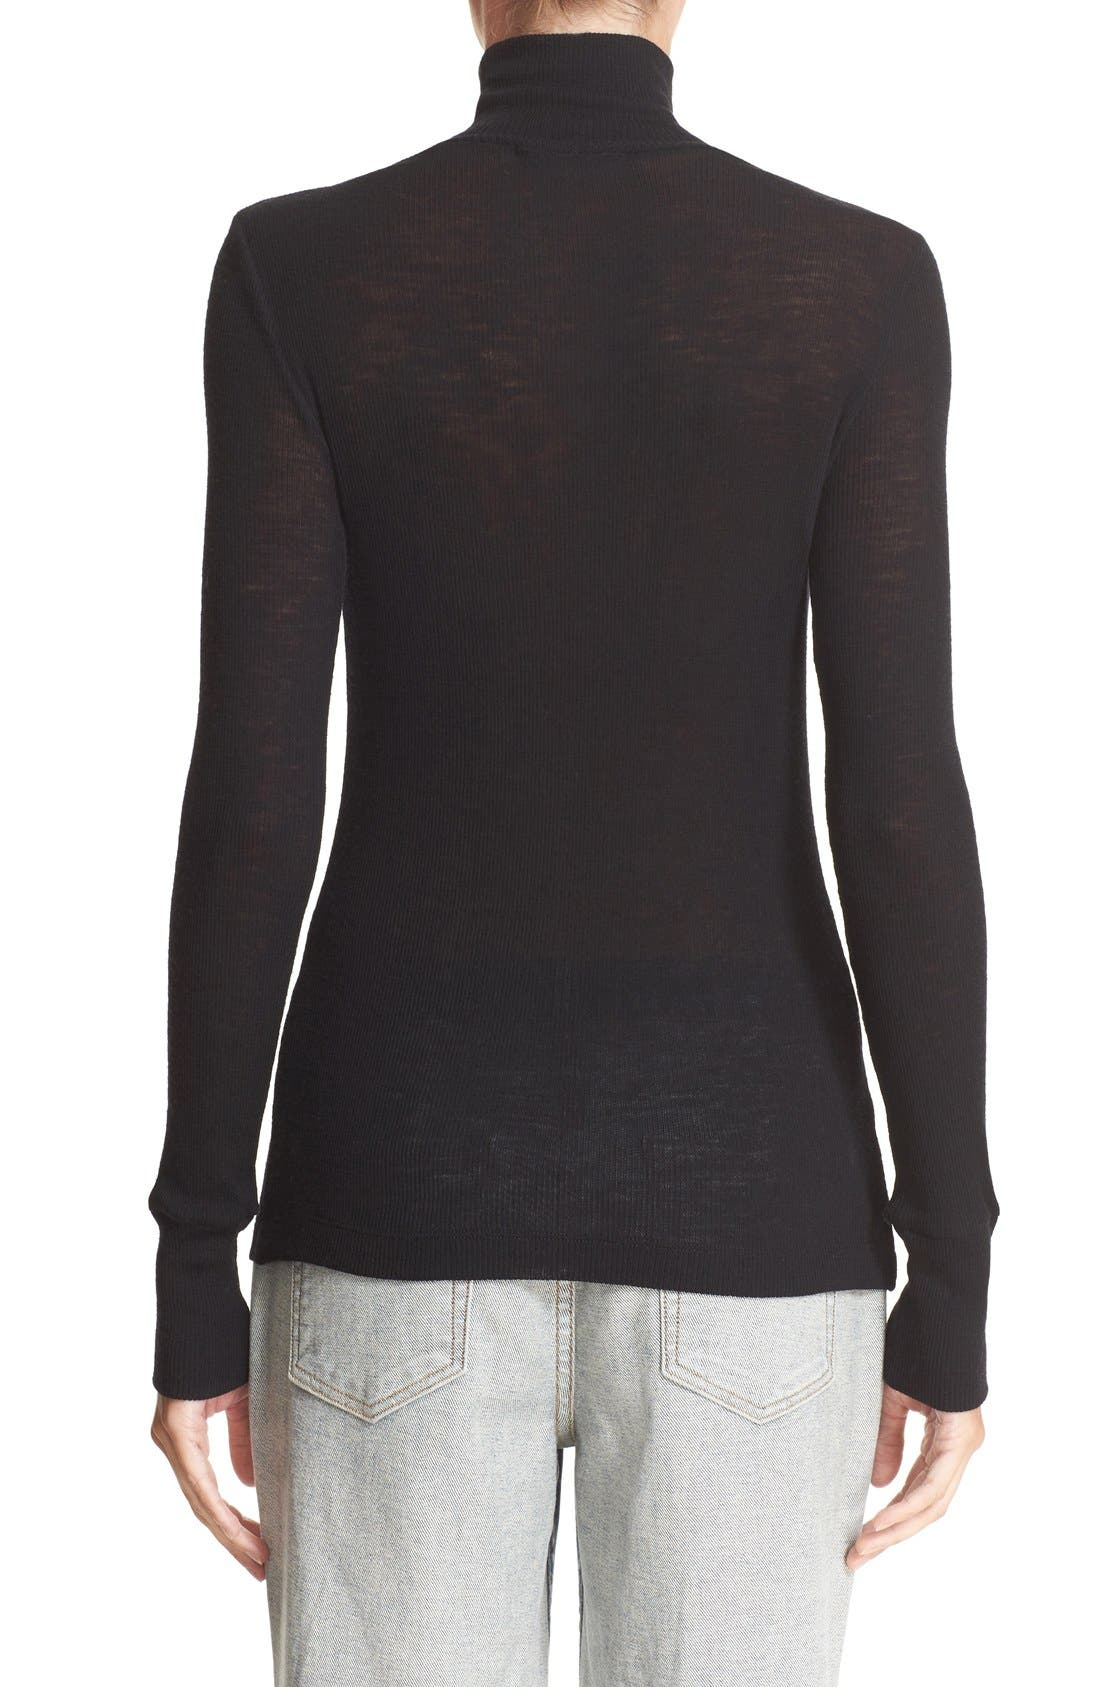 Alternate Image 2  - T by Alexander Wang Sheer Wool Turtleneck